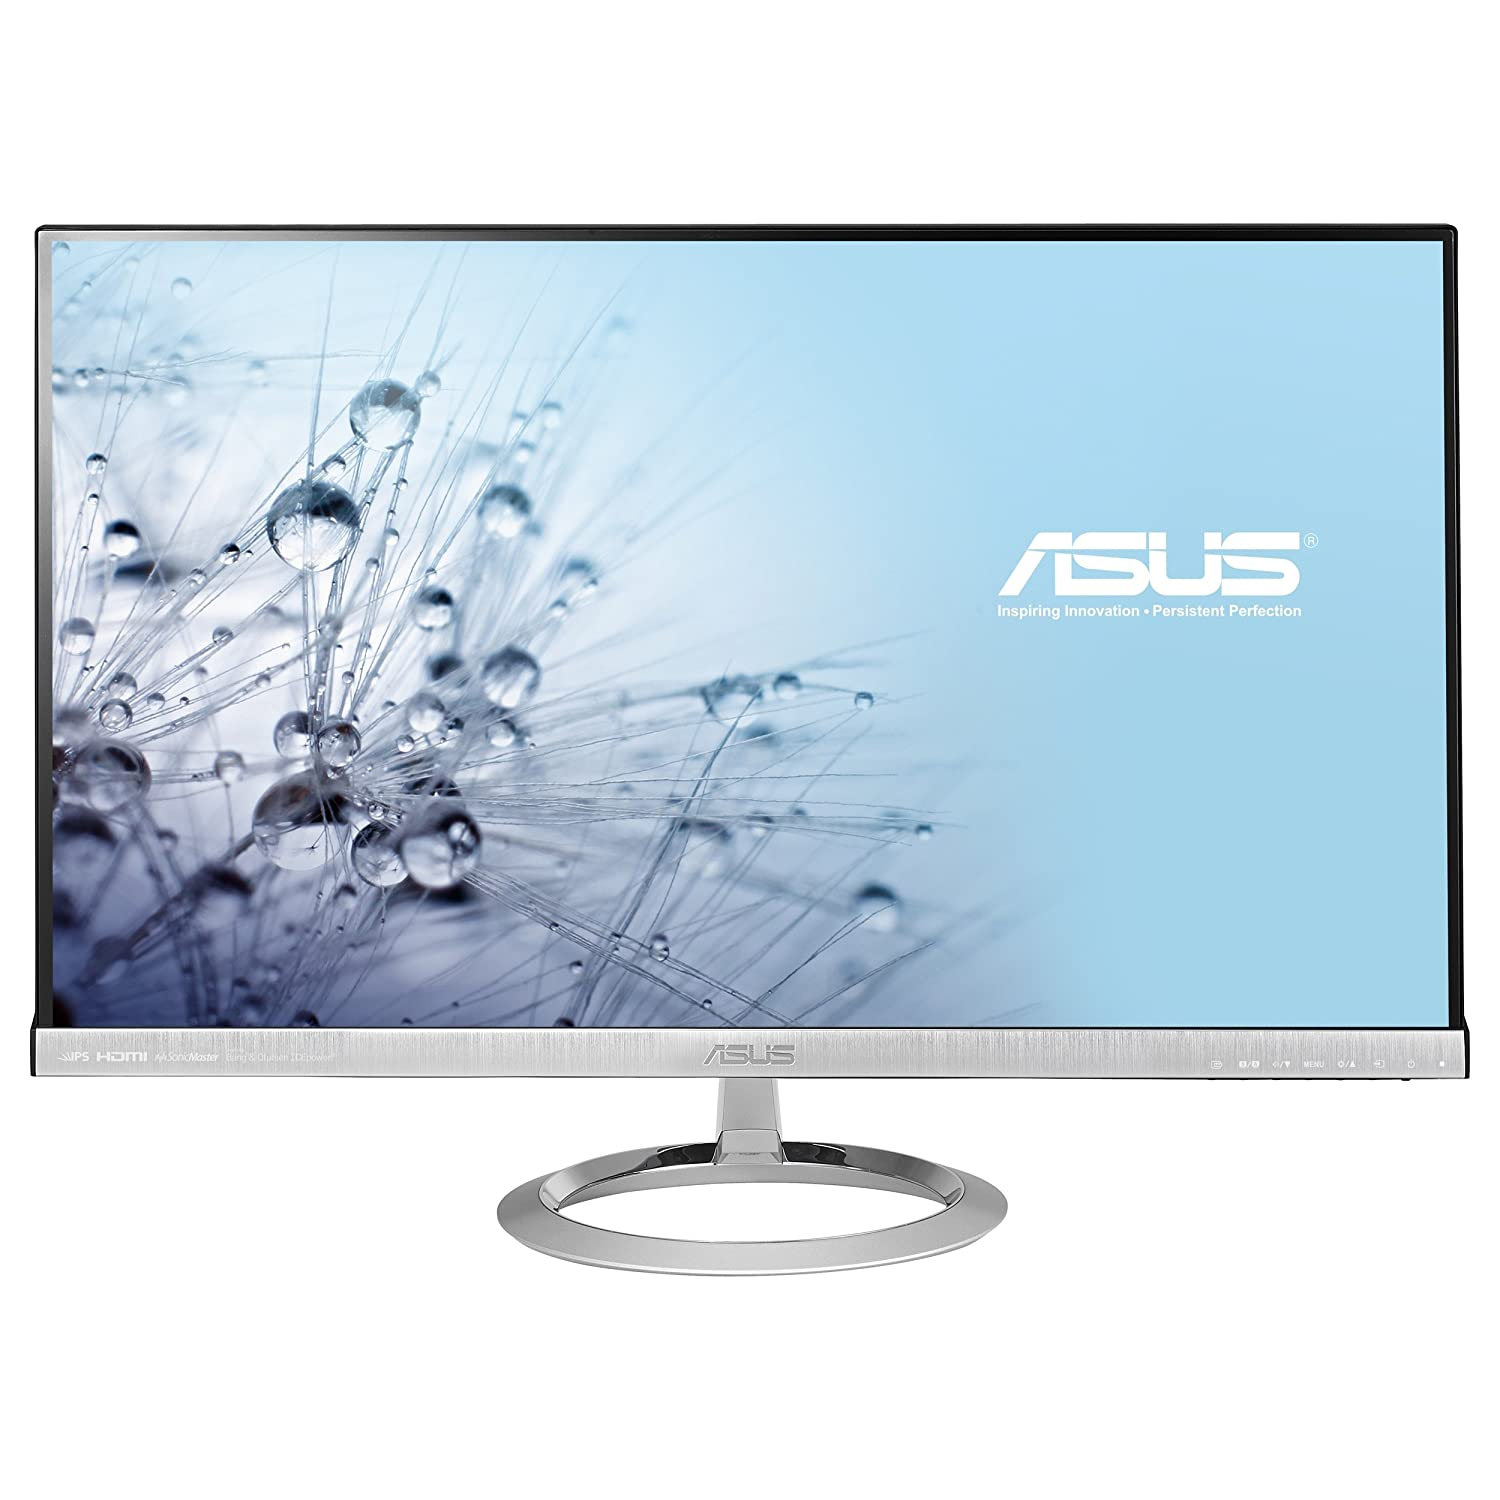 "ASUS MX279H 27"" Full HD 1920x1080 AH-IPS HDMI VGA Back-lit LED Monitor"